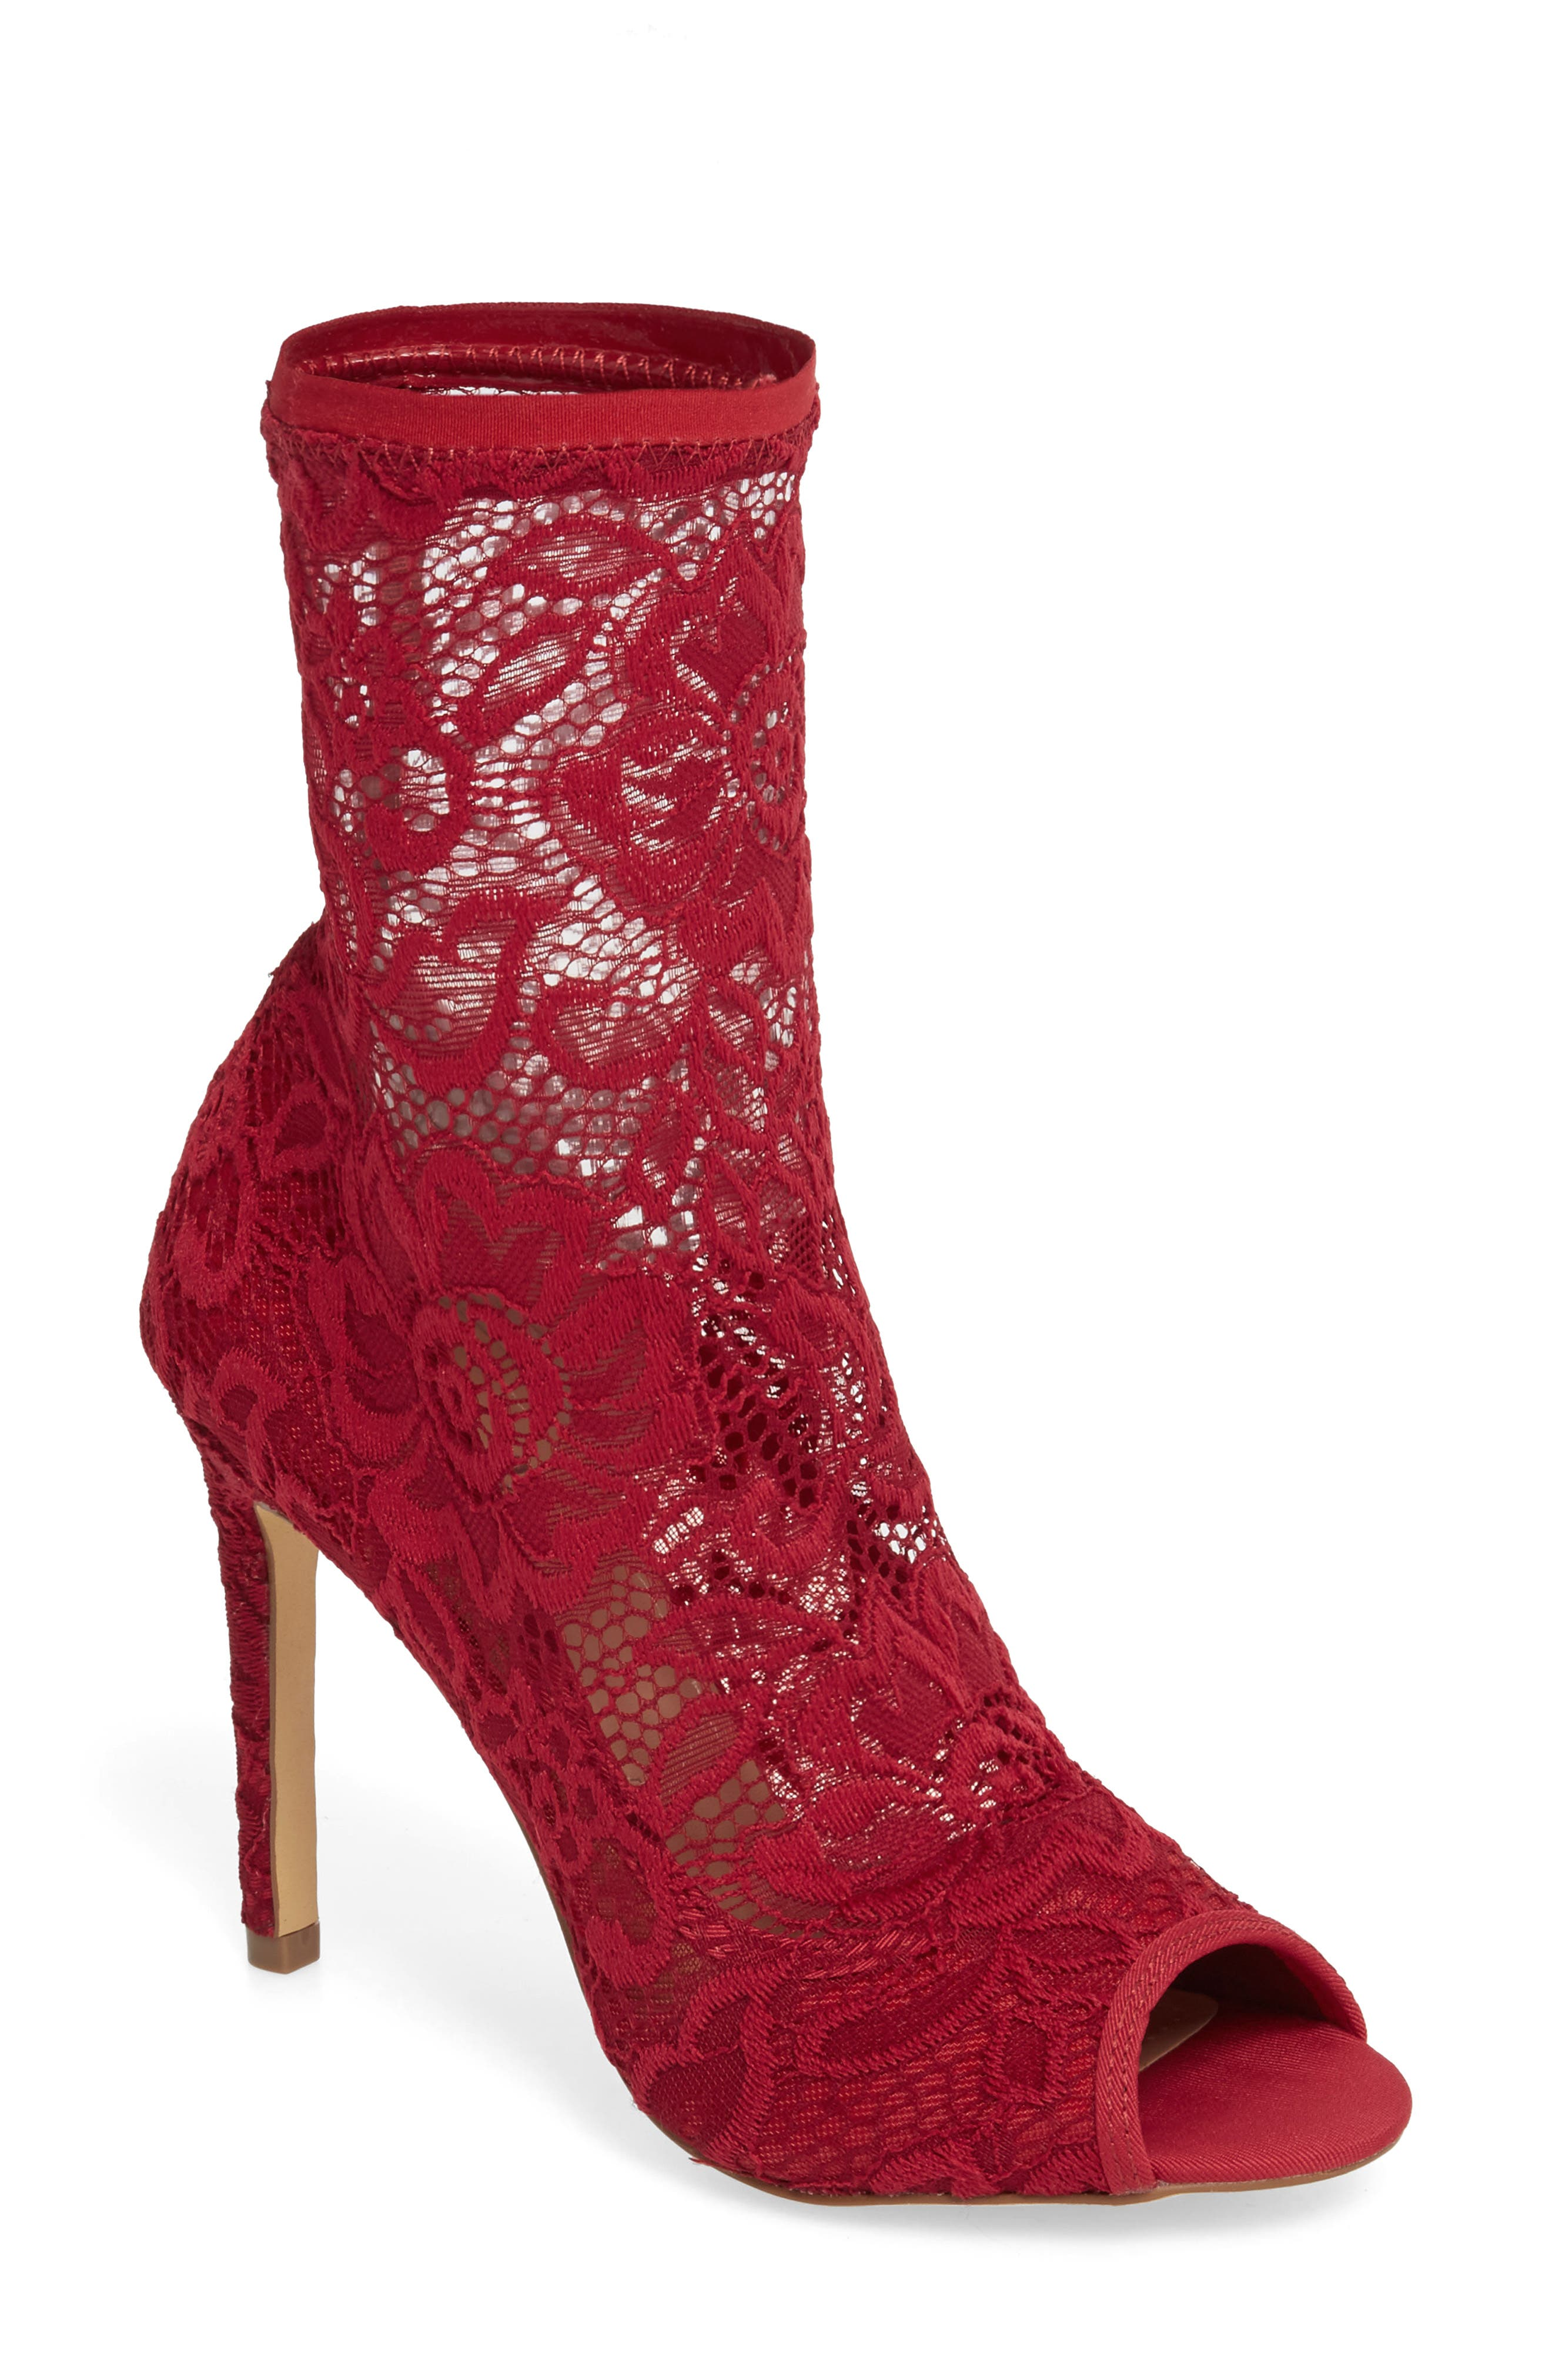 Imaginary Lace Sock Bootie,                             Main thumbnail 1, color,                             Scarlet Fabric